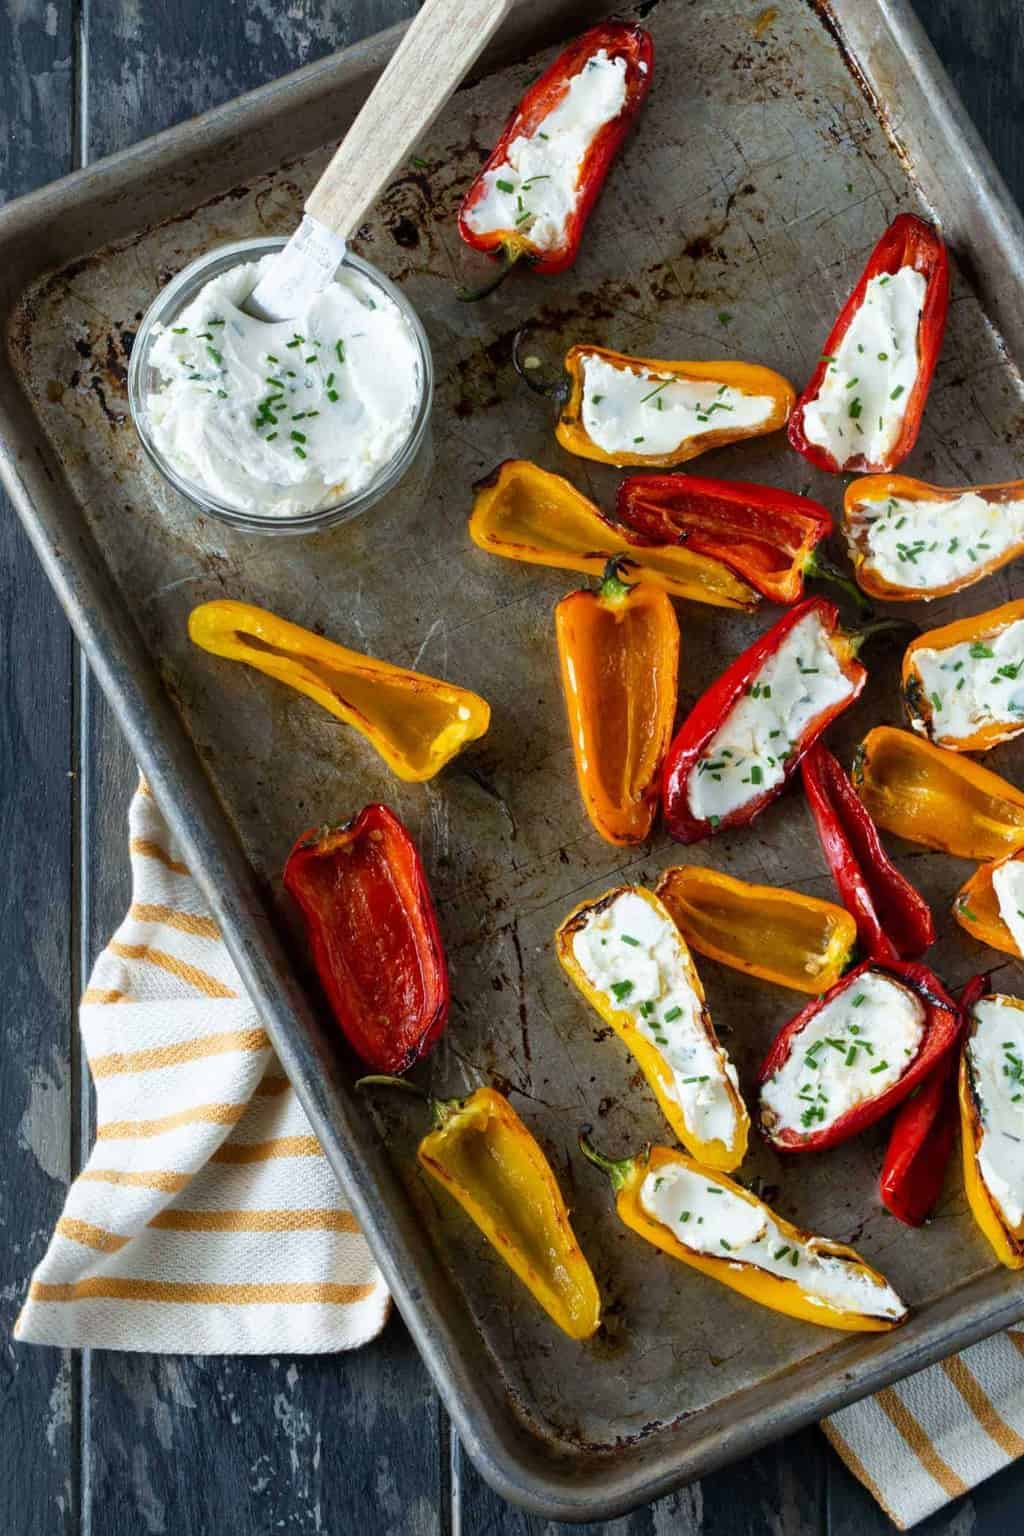 Grilled Peppers with Goat Cheese recipe on sheet pan with dark background and fresh herbs for garnish.